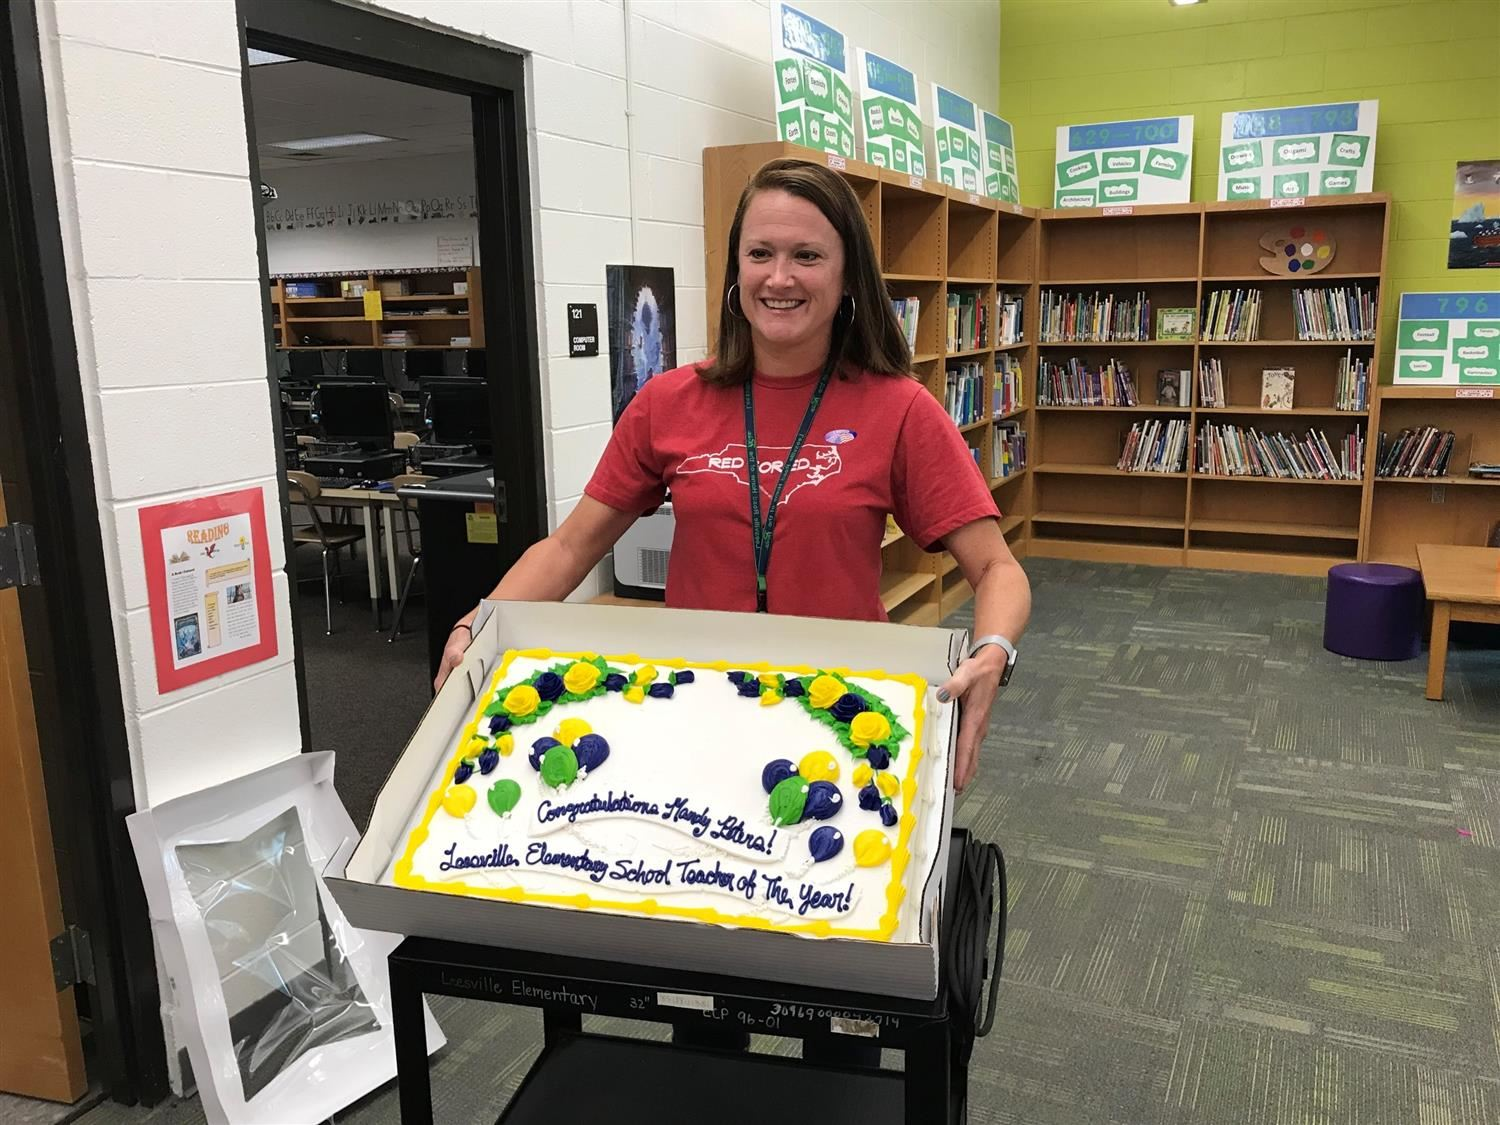 Mrs. Peters, Teacher of the Year 2018-2019